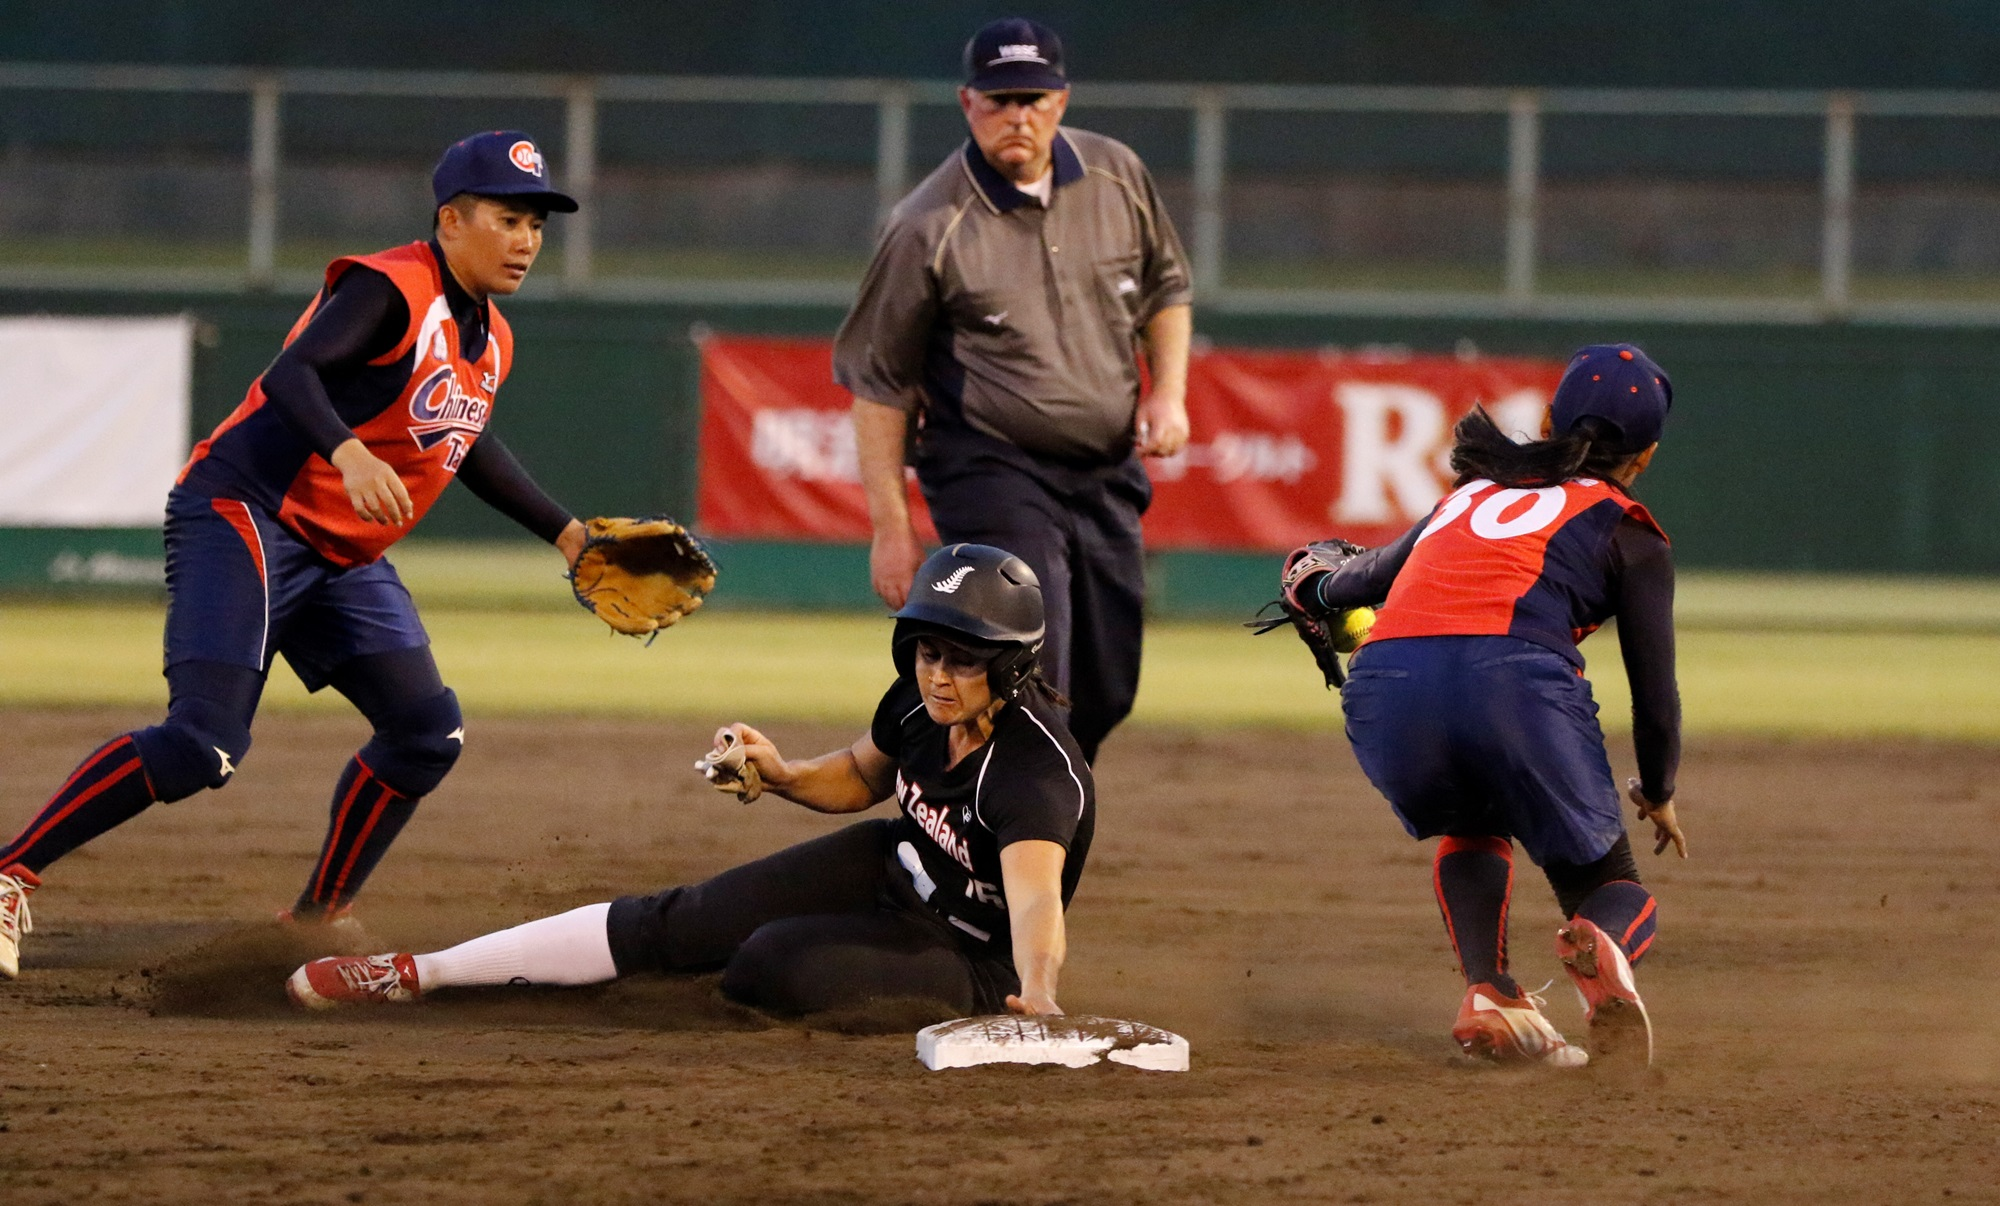 Chinese Taipei resisted a late comeback attempt